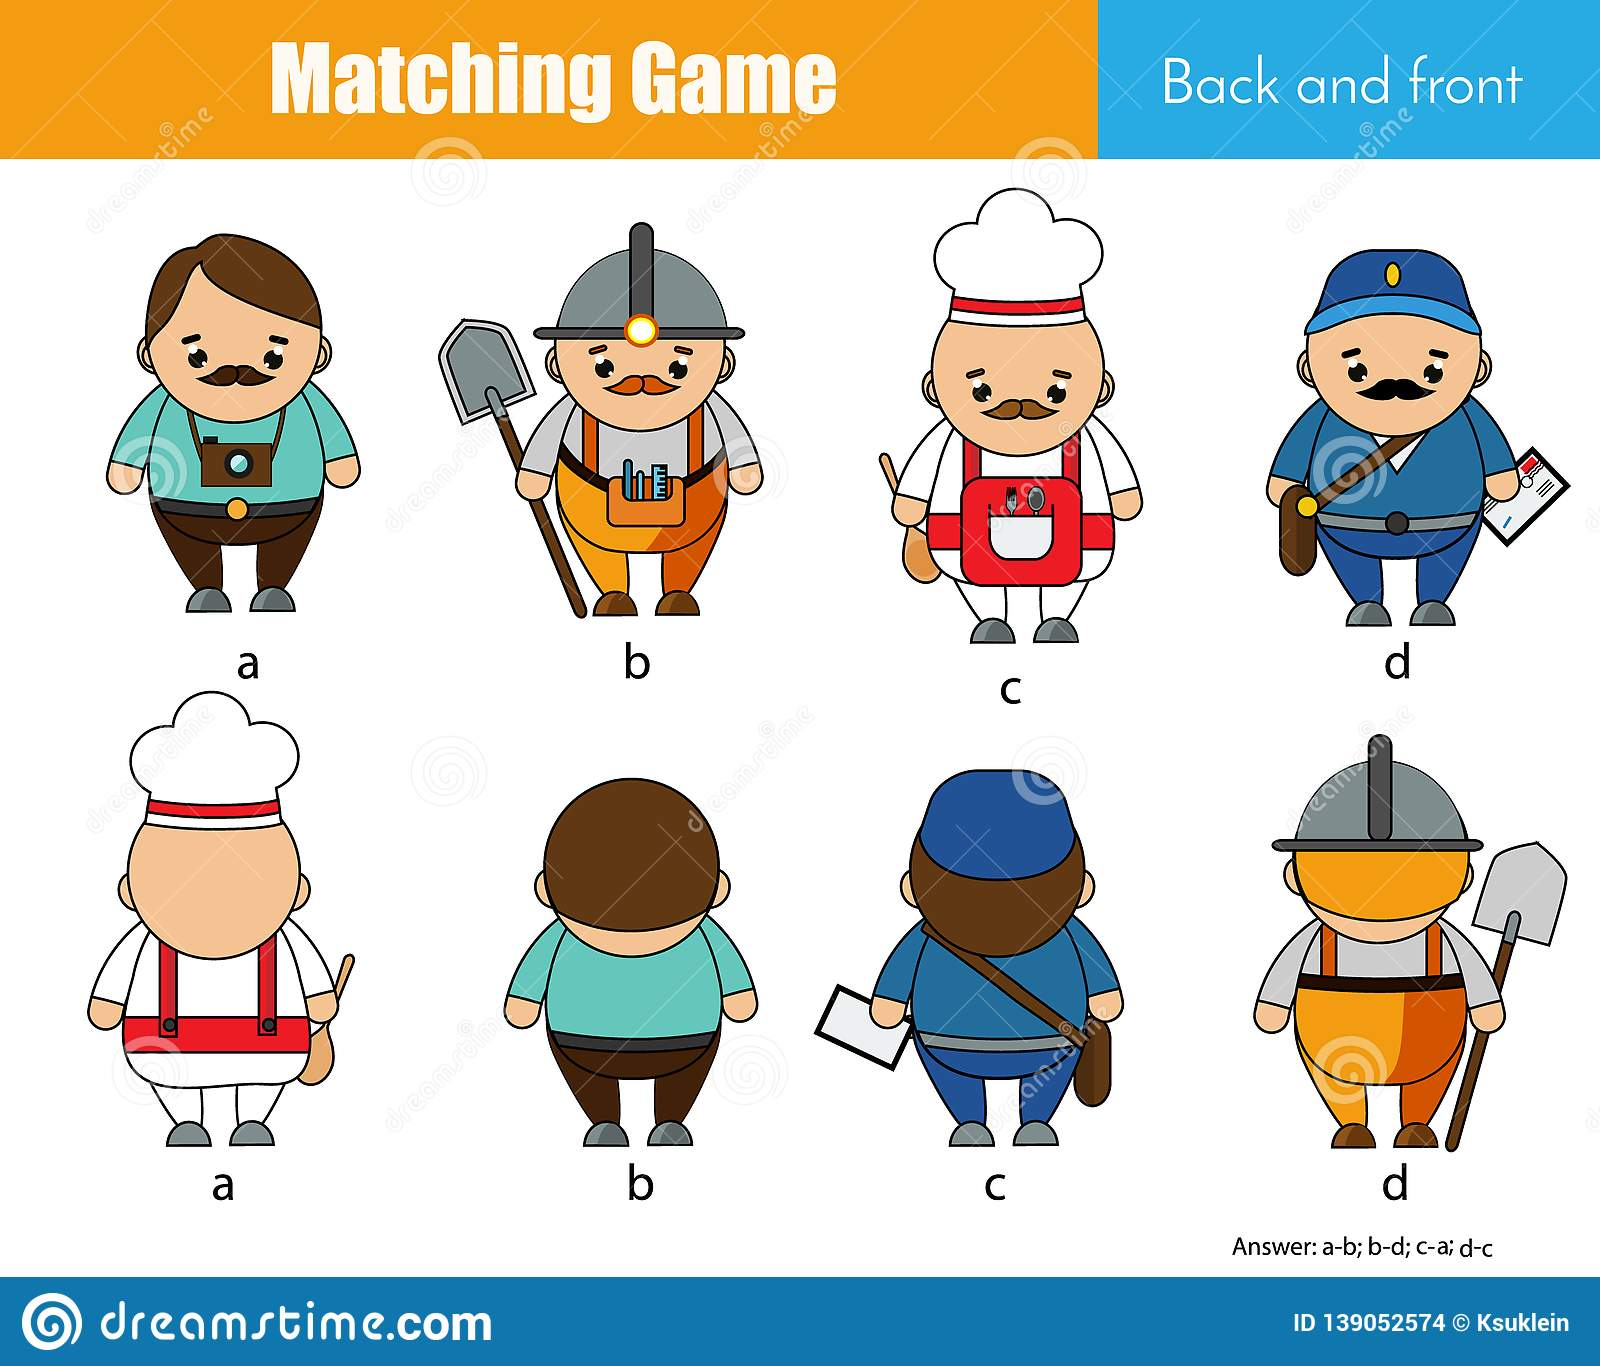 Matching Game Educational Children Activity Learning